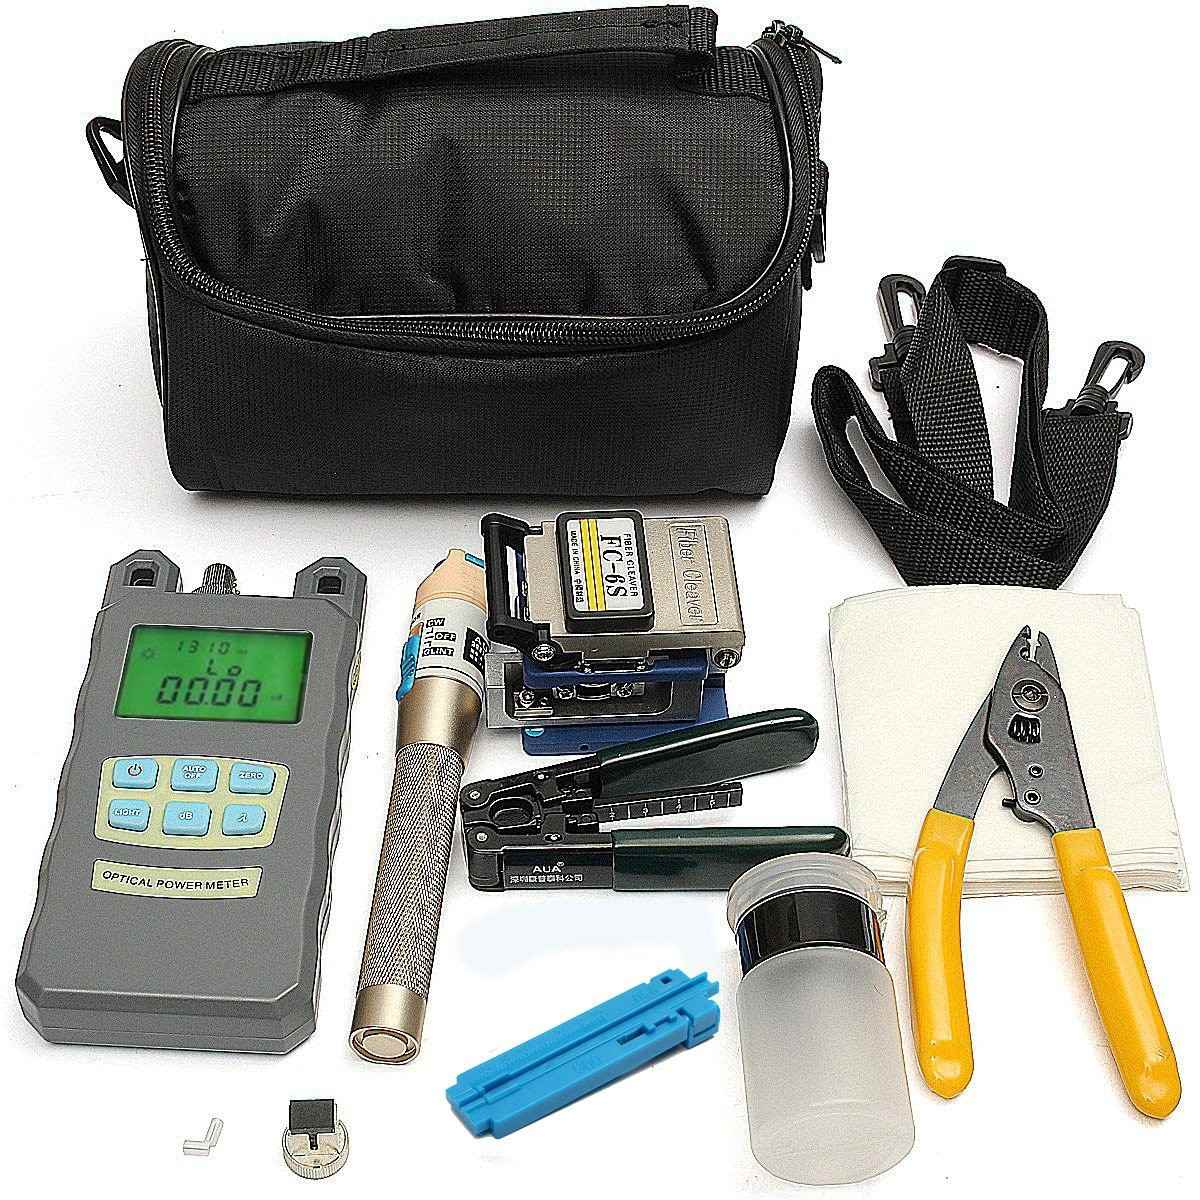 Fiber Optic FTTH Tool Kit with FC-6S Fiber Cleaver and High Precision Optical Power Meter Fiber Optic Stripper ray tricker optoelectronics and fiber optic technology